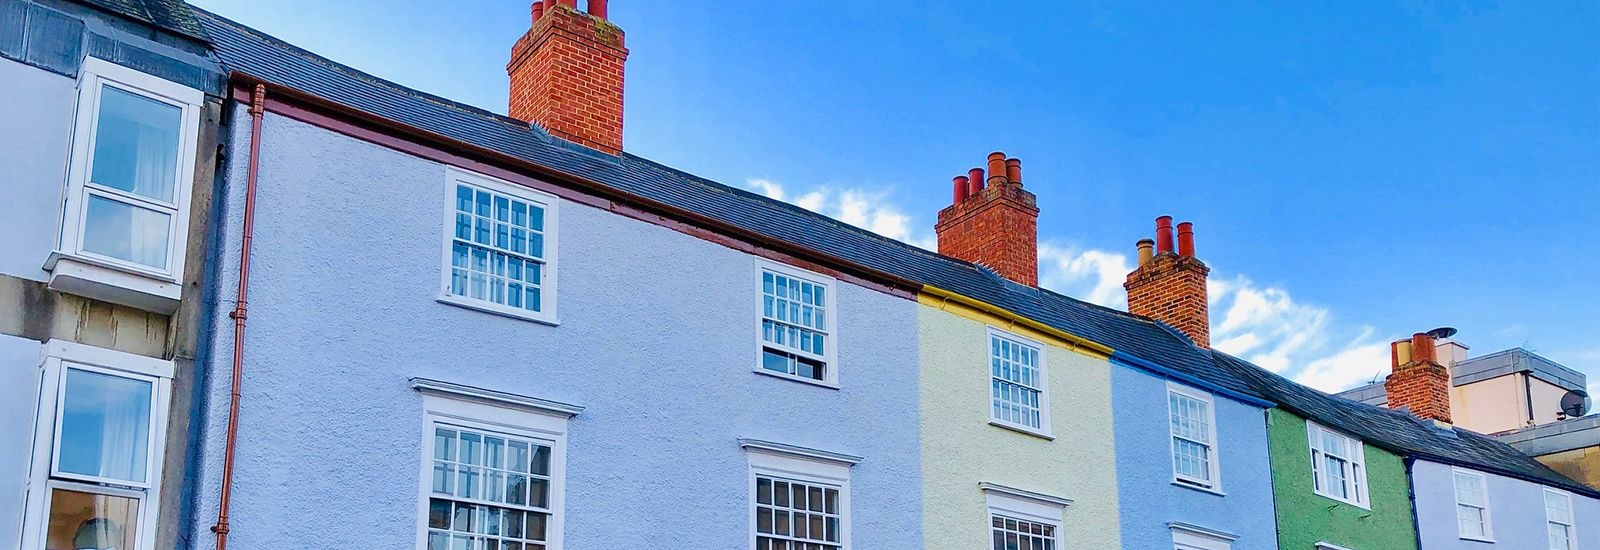 Colourful houses on Longwall Street on a sunny day